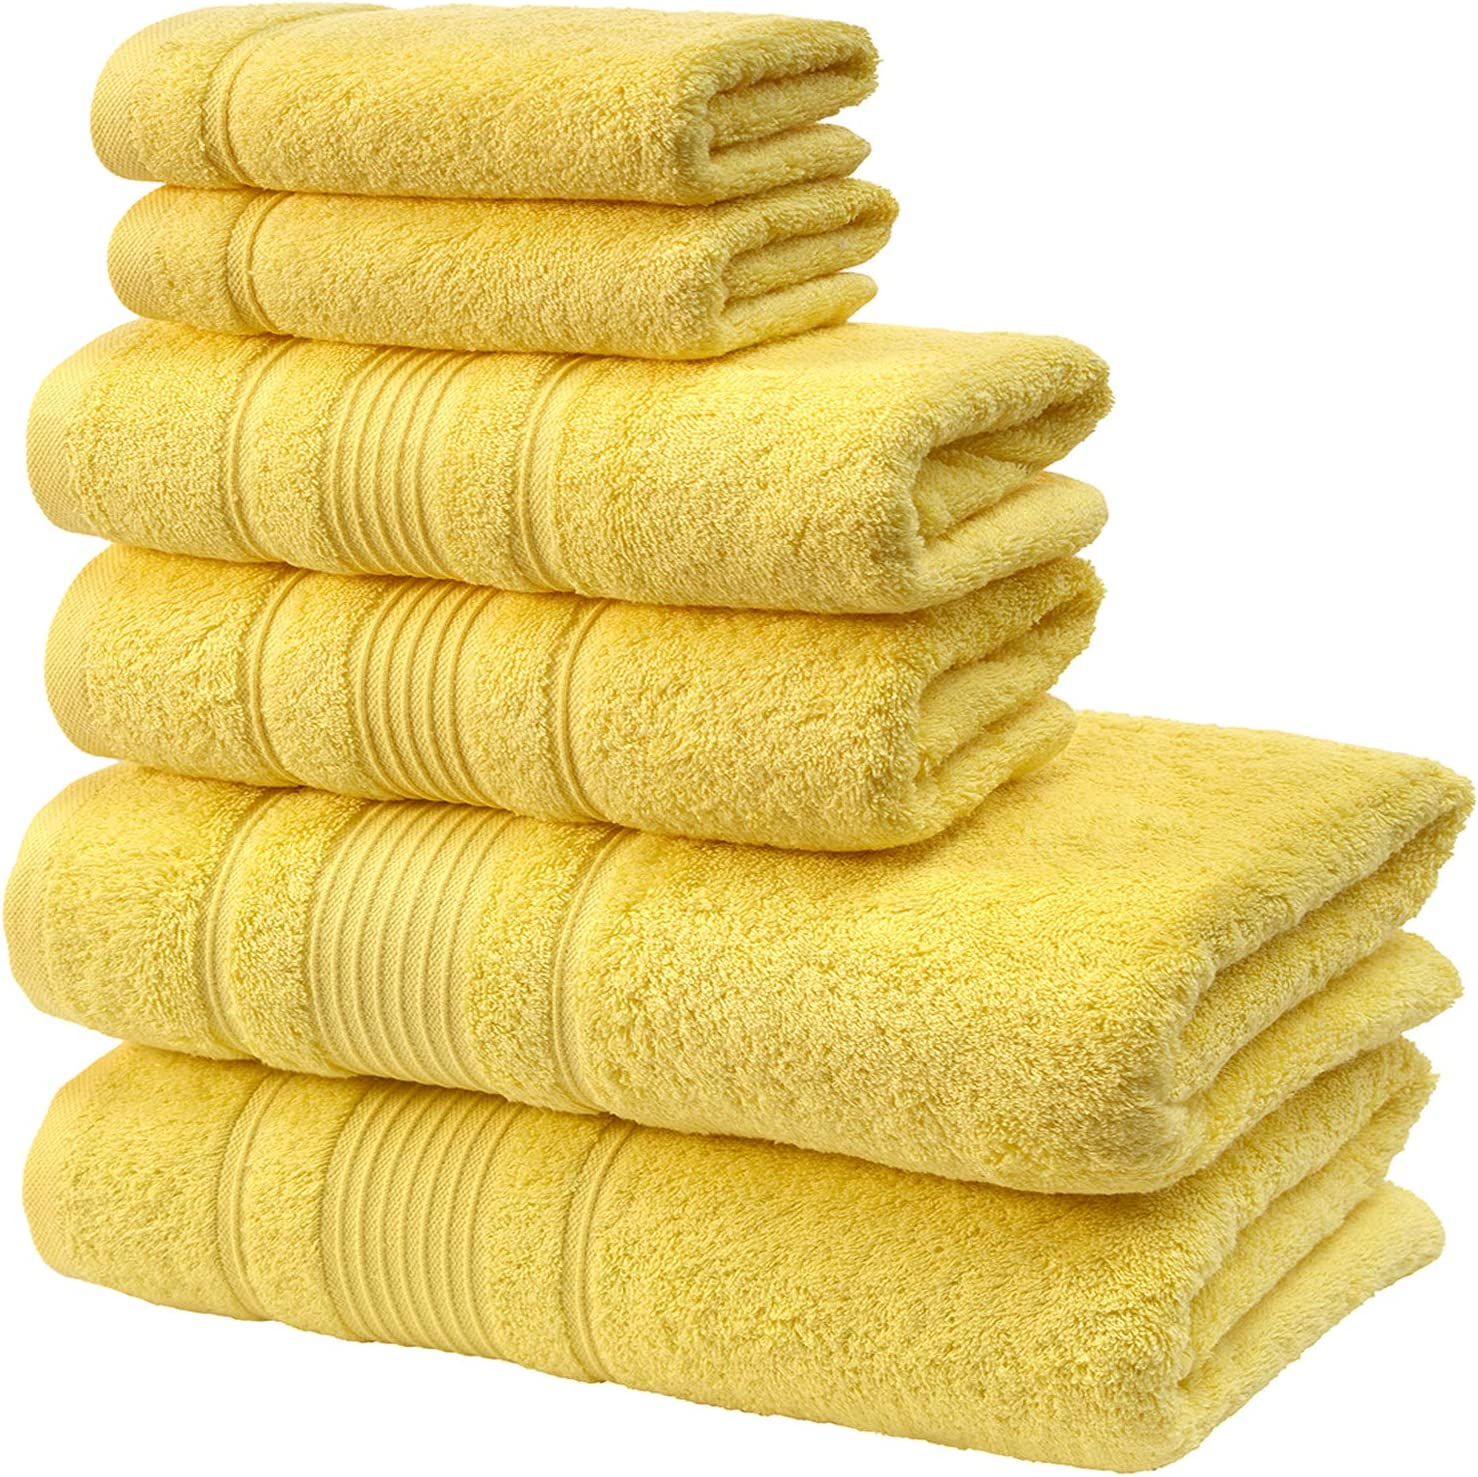 Qute Home Spa & Hotel Towels 6 Piece Towel Set, 2 Bath Towels, 2 Hand Towels, and 2 Washcloths - Yellow